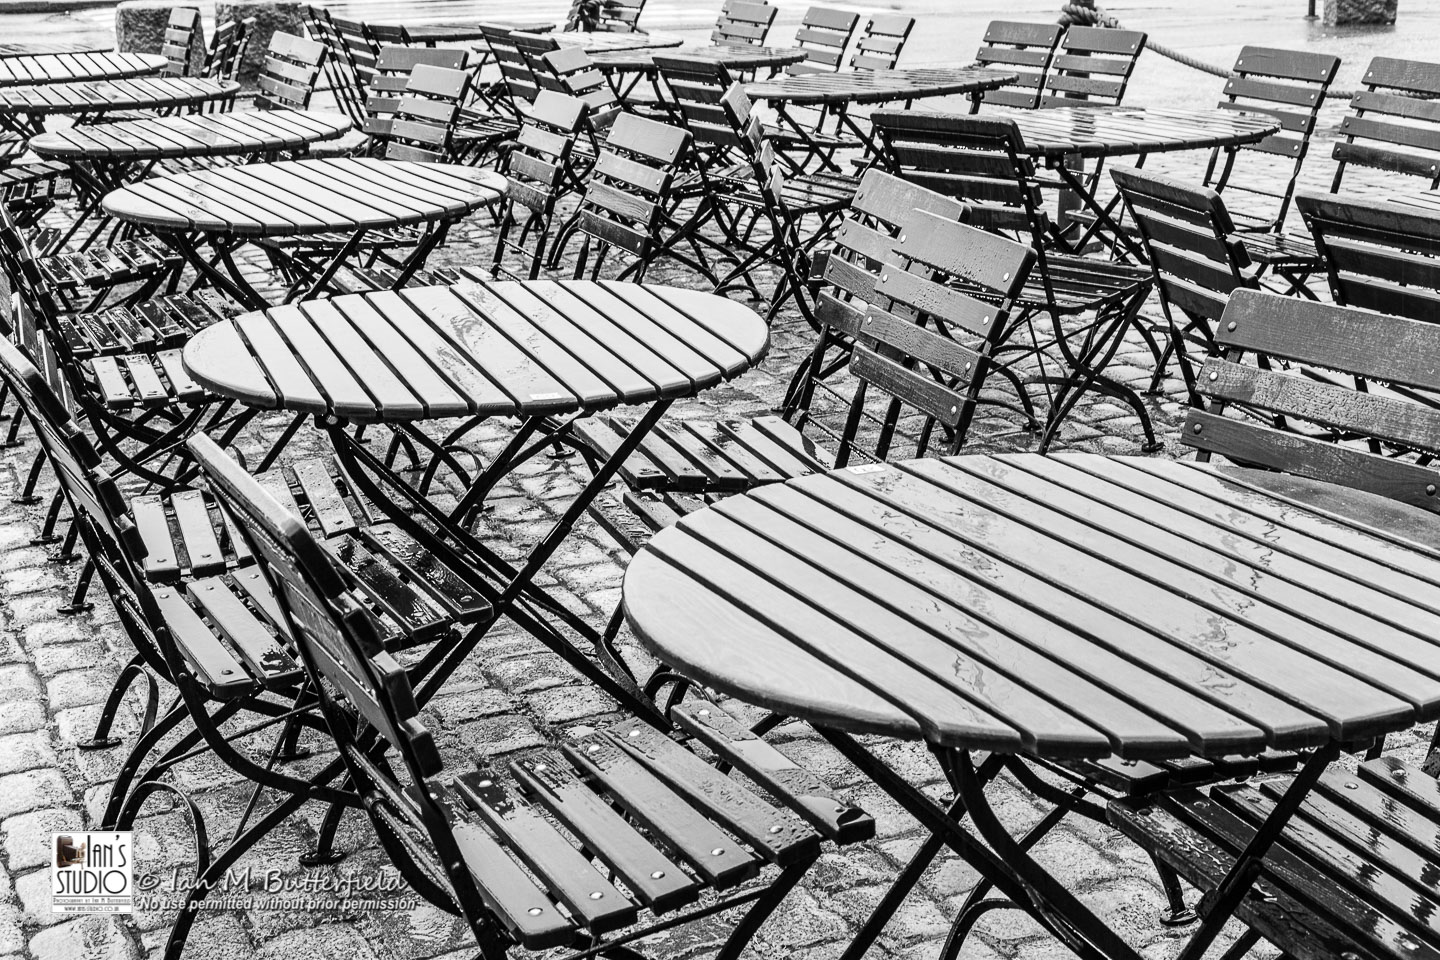 ACADEMY BITE: Lessons from Norway #4 – Rain soaked tables and chairs